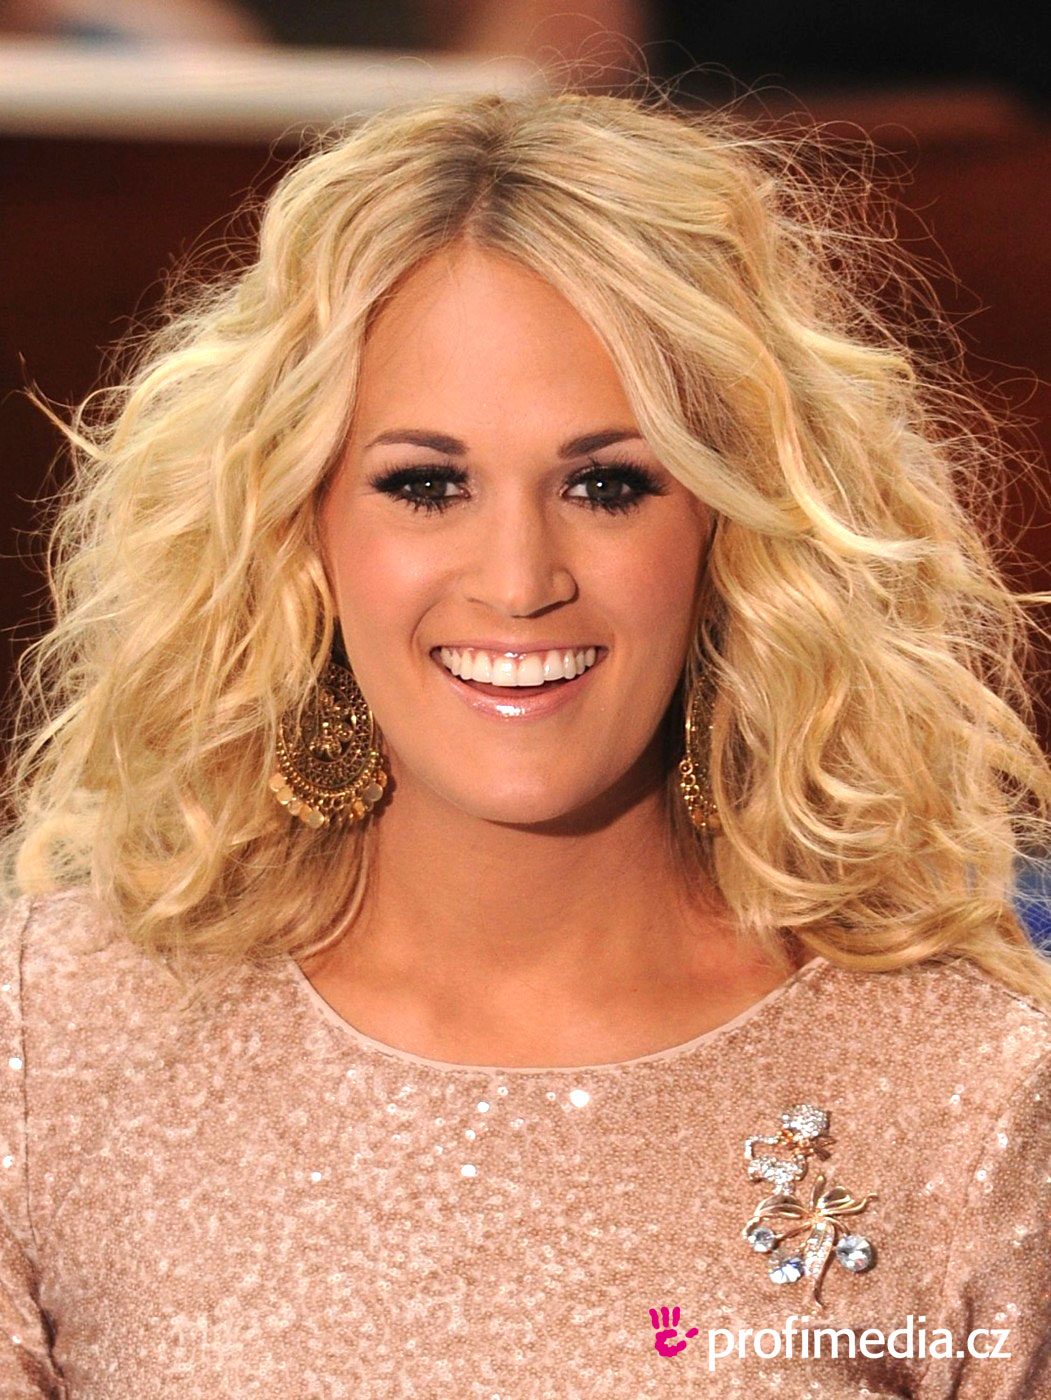 13 Best Carrie Underwood Hairstyles images | Celebrity ...